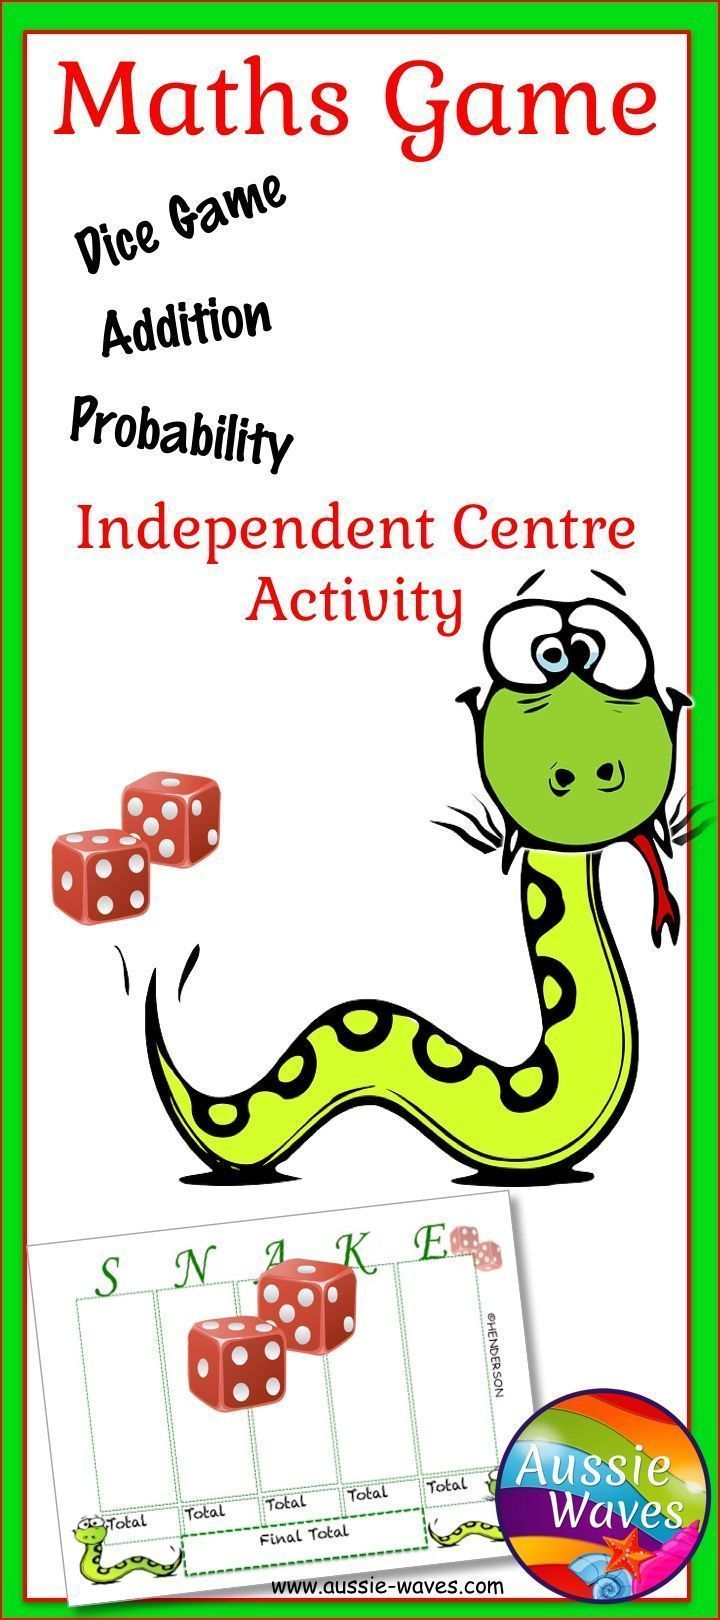 Elementary Math Game Play SNAKE for ADDITION